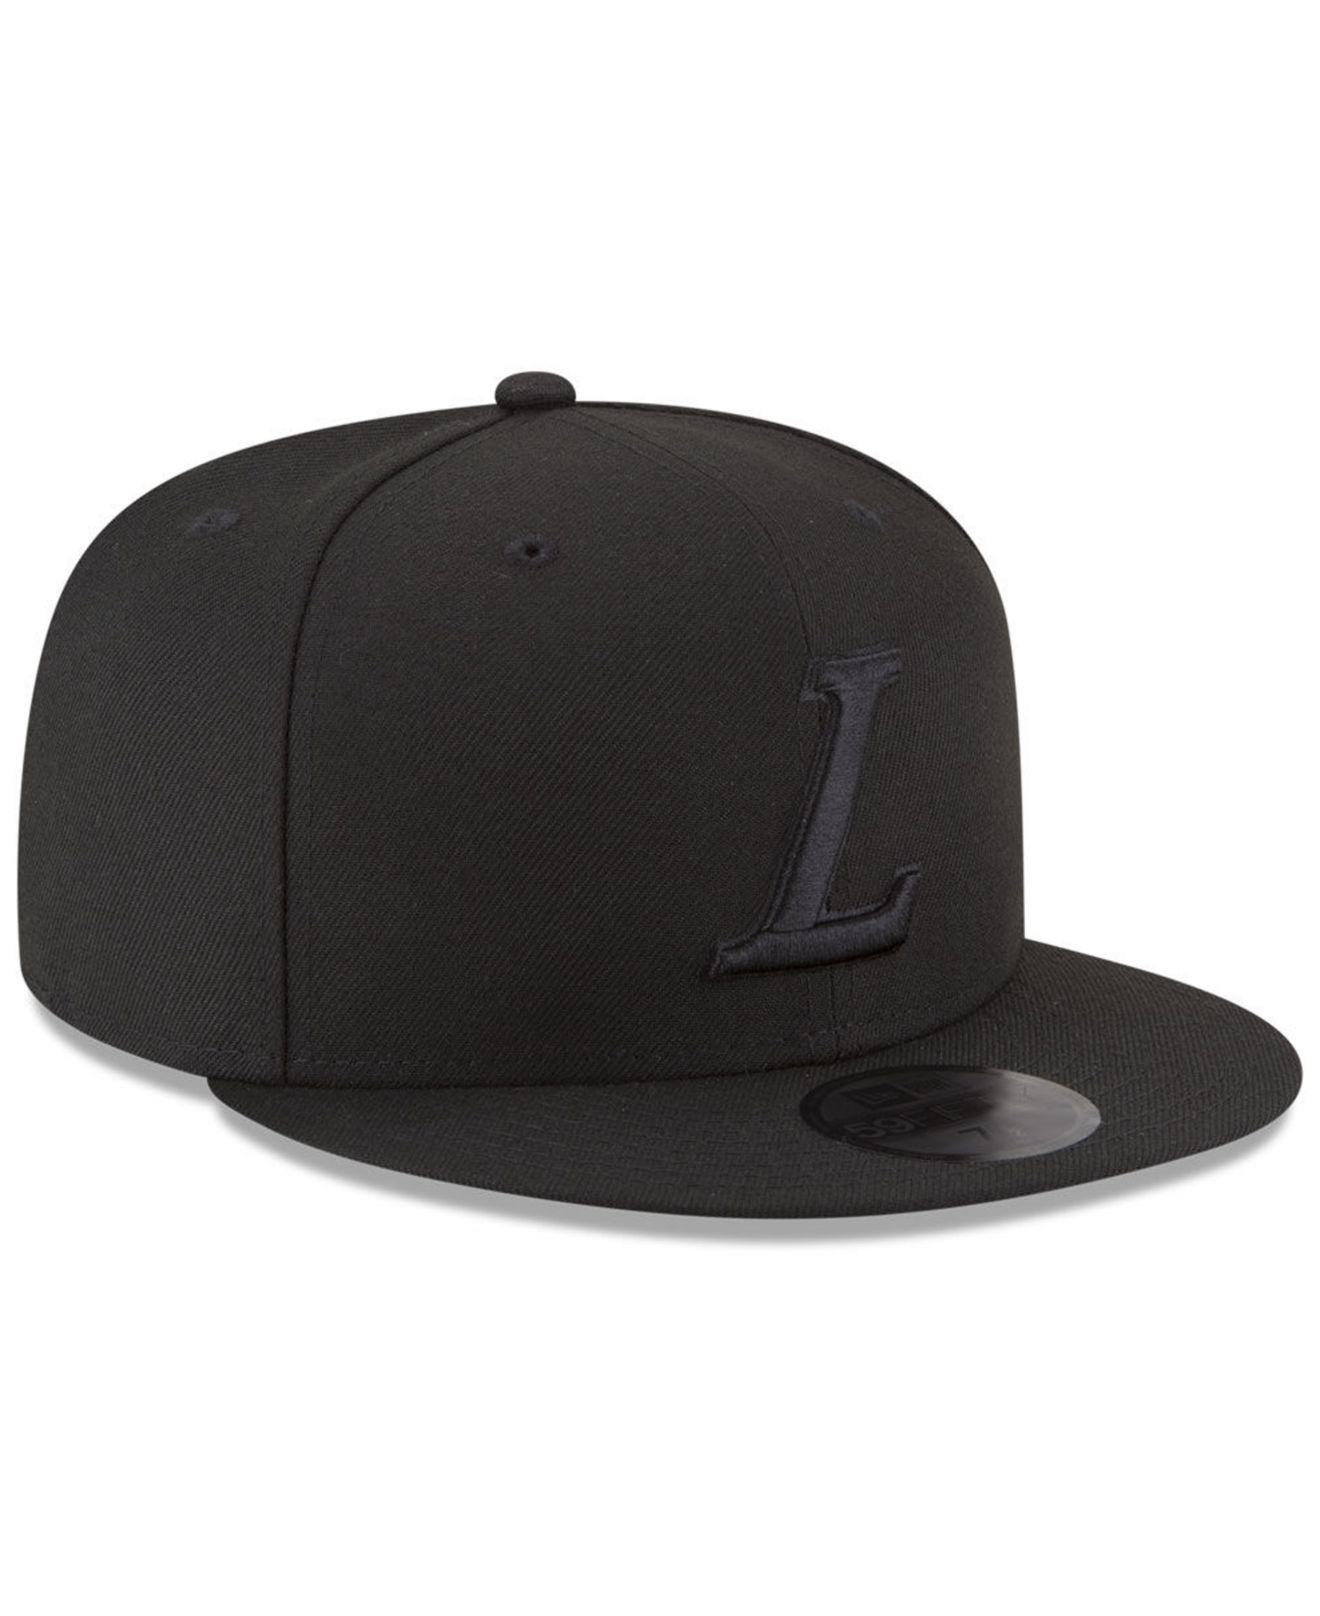 check out 1e945 84d1c 2b4a6 620ad  netherlands ktz los angeles lakers alpha triple black 59fifty  fitted cap for men lyst. view